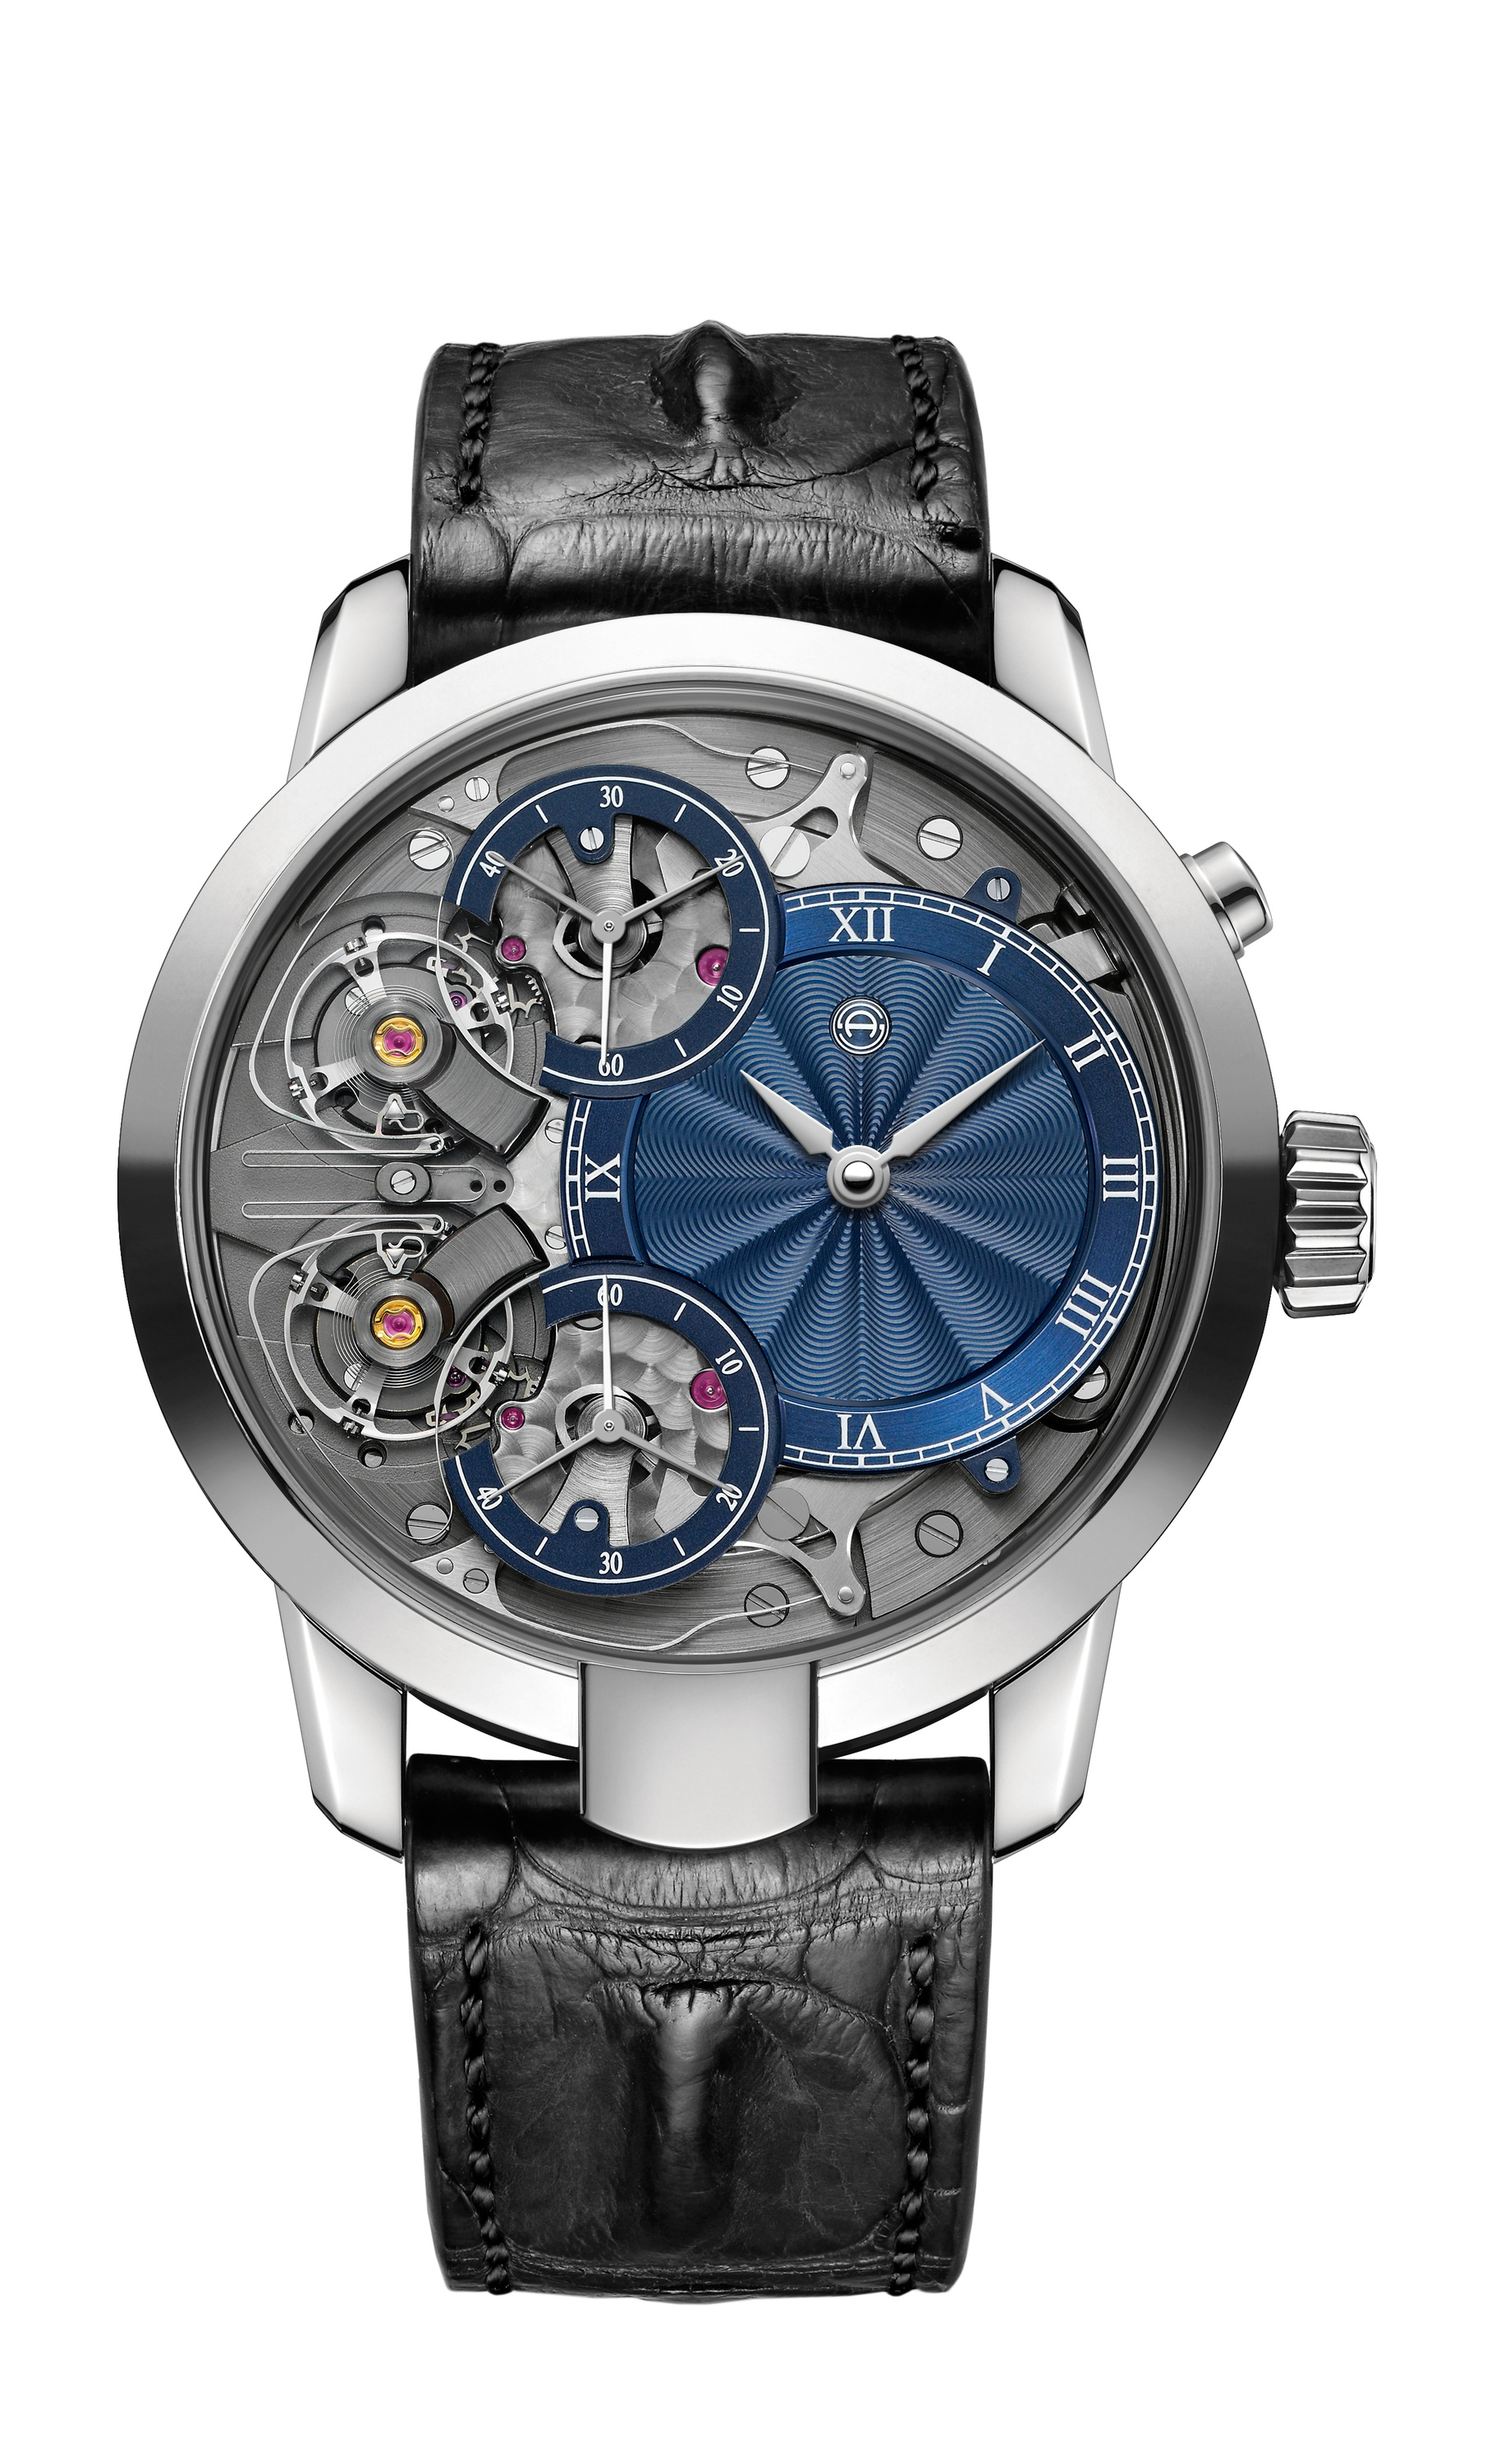 Armin Strom Mirrored Force Resonance with guilloche' dial by Kari Voutilainen.